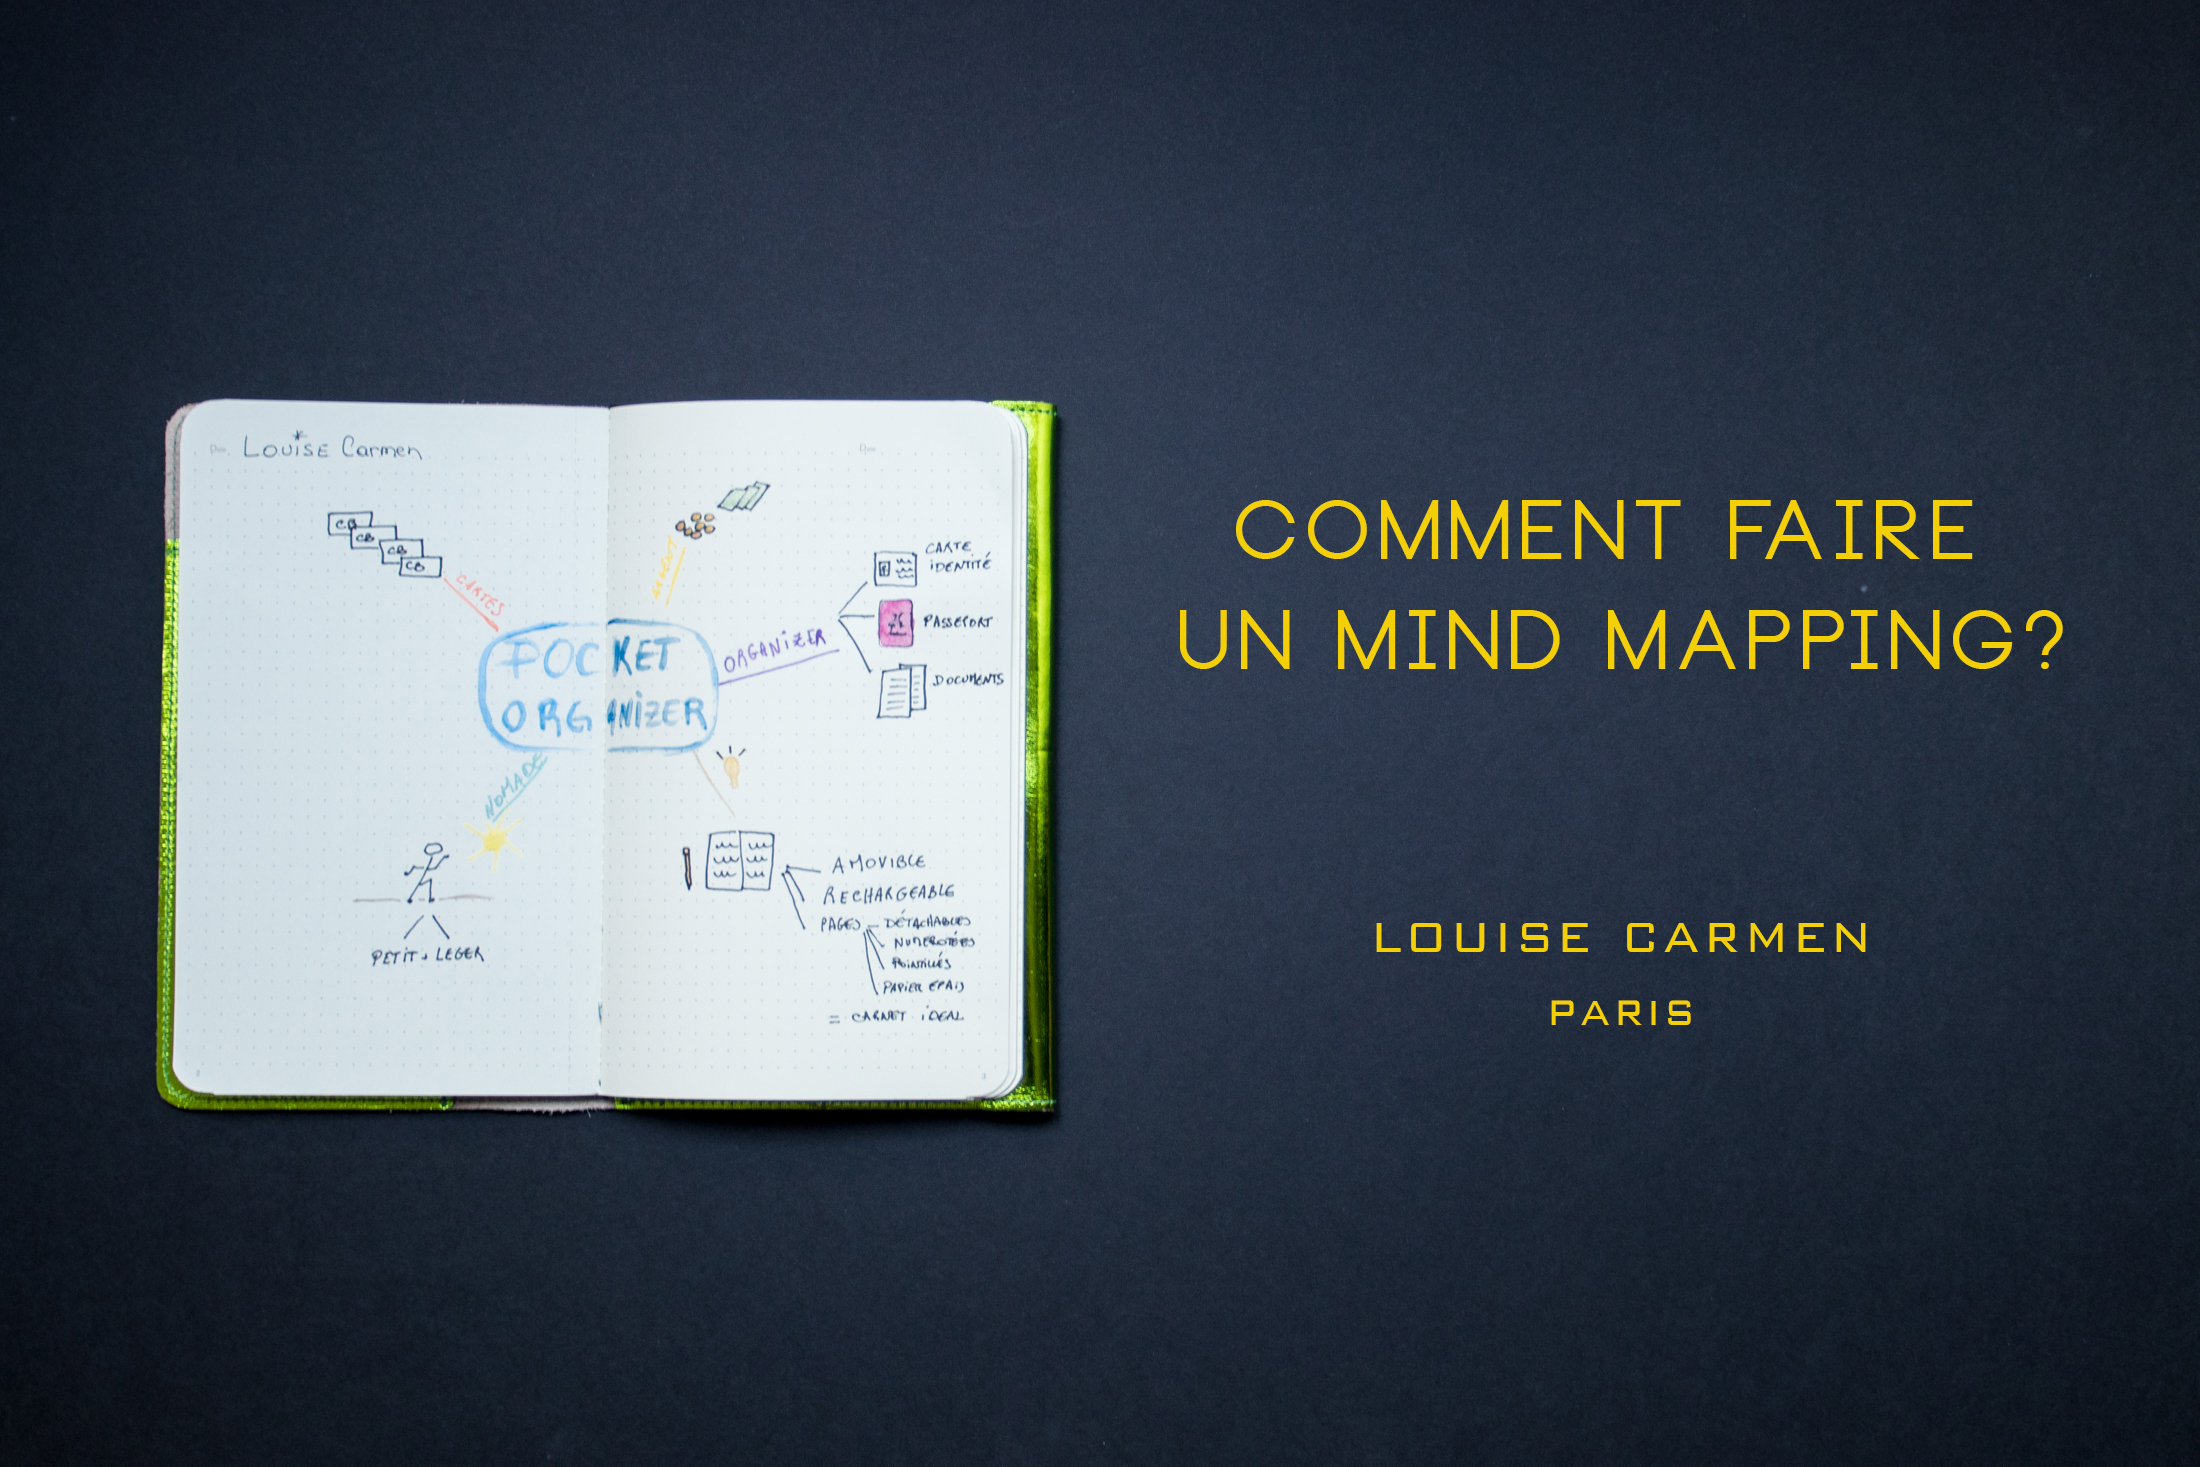 Louise Carmen, comment faire un mind mapping